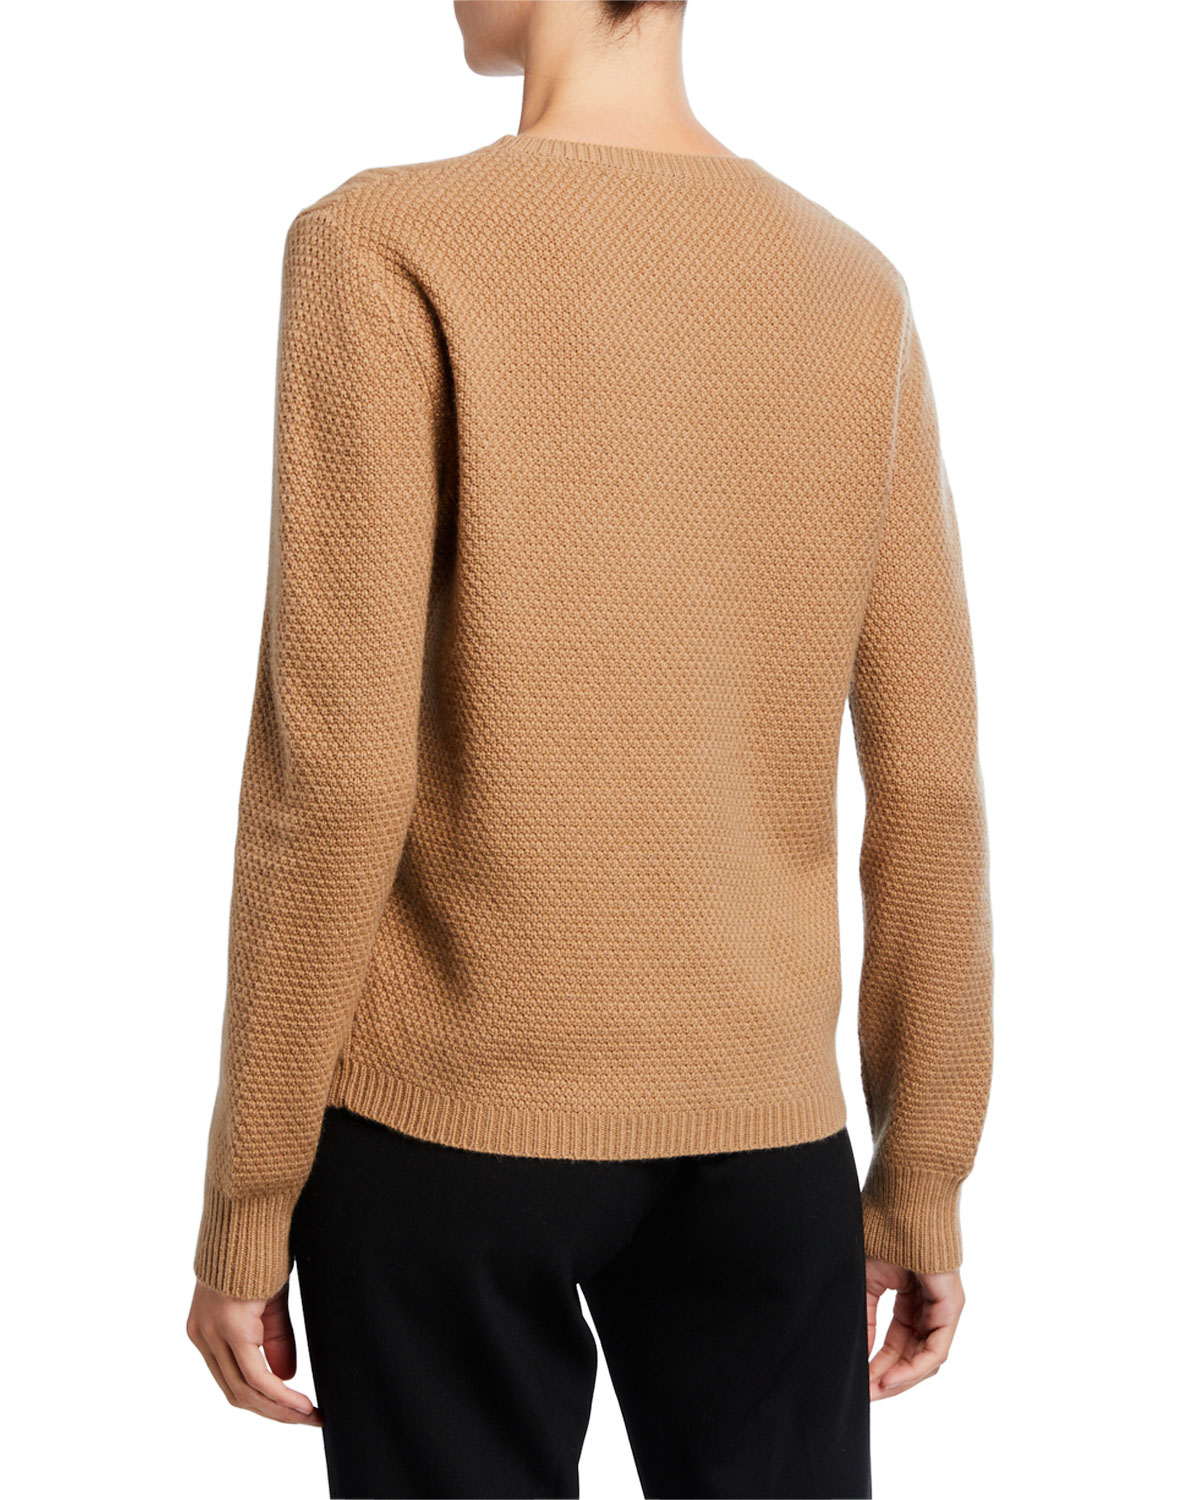 Termoli Cashmere Cable Stitched Sweater by Maxmara